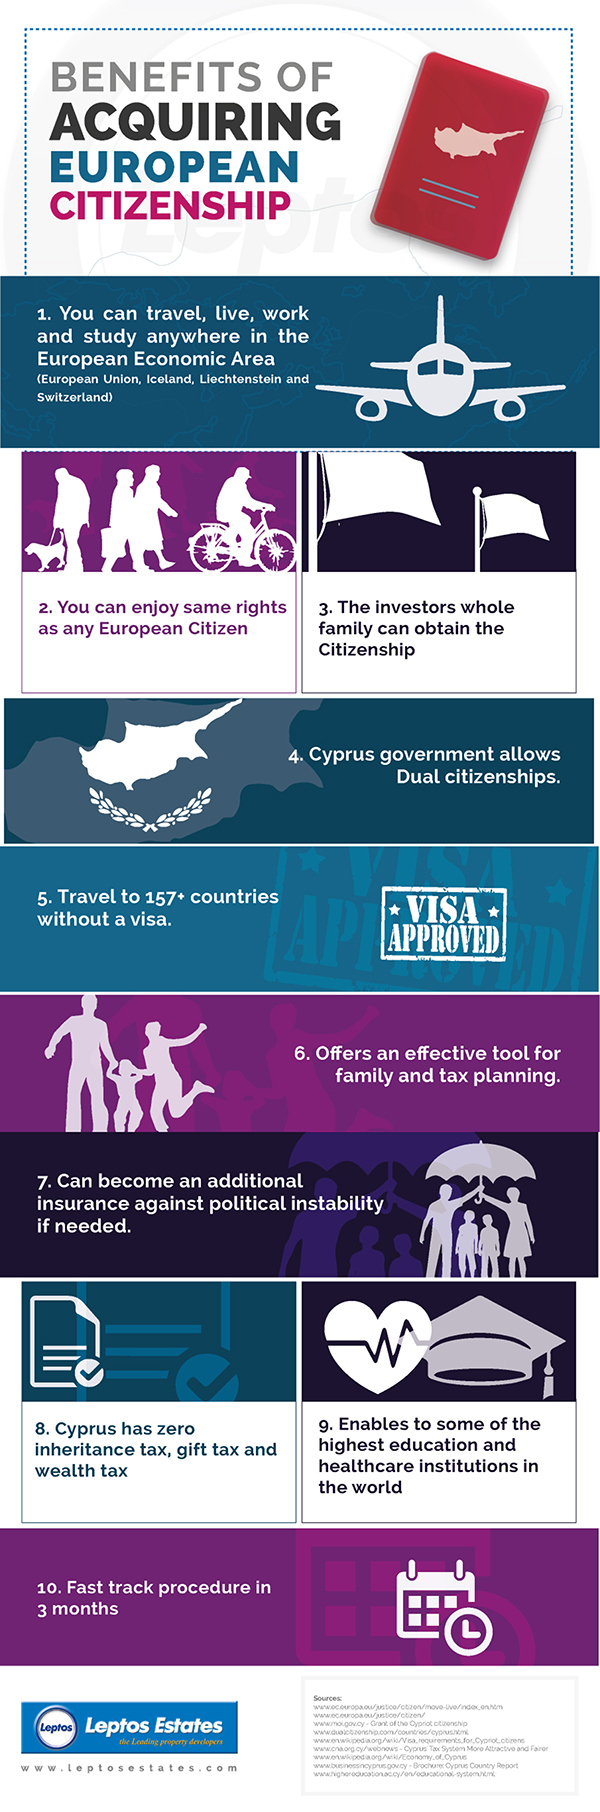 benefits-for-acquiring-european-citizenship-infographic-plaza